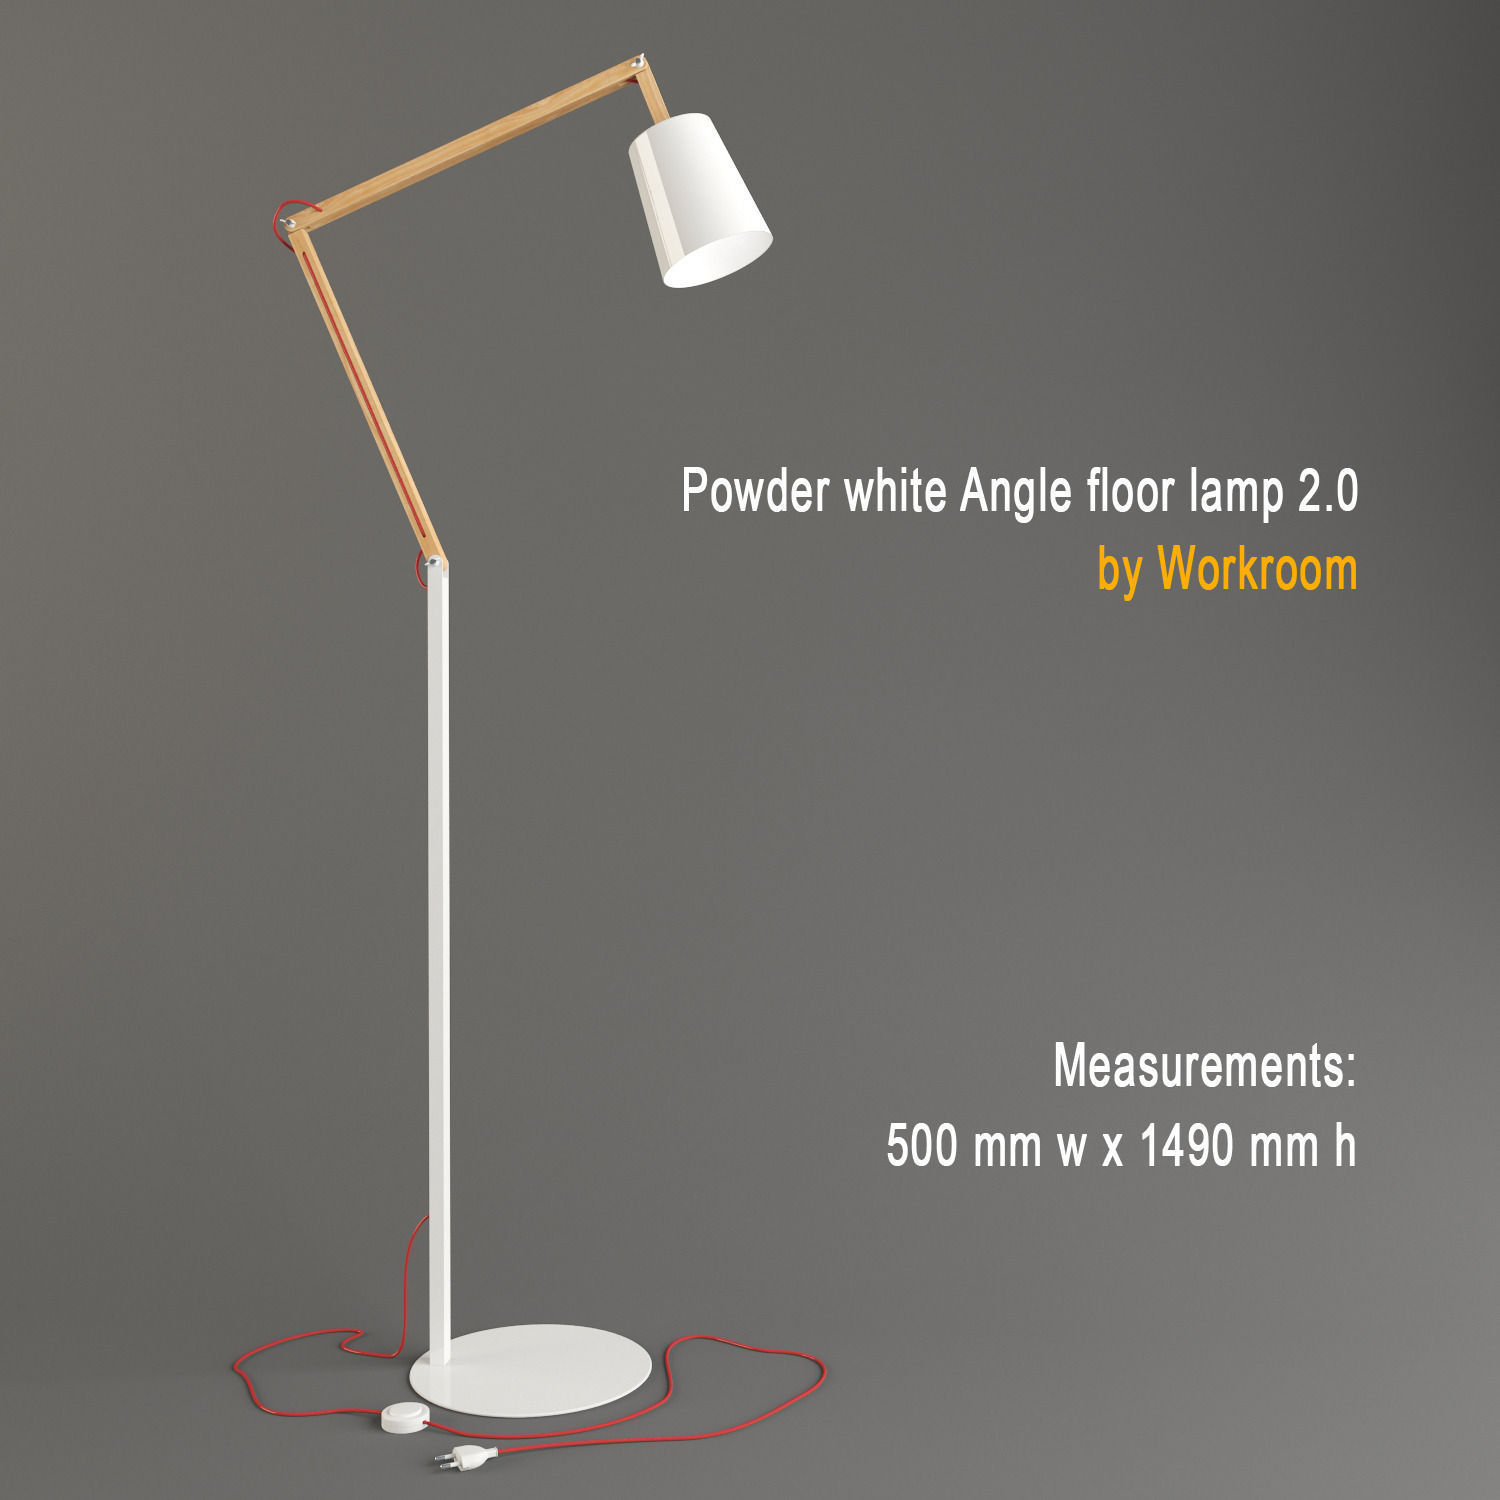 Powder white angle floor lamp by workroom 3d model max obj 3ds mtl powder white angle floor lamp by workroom 3d model max obj 3ds mtl 1 aloadofball Gallery